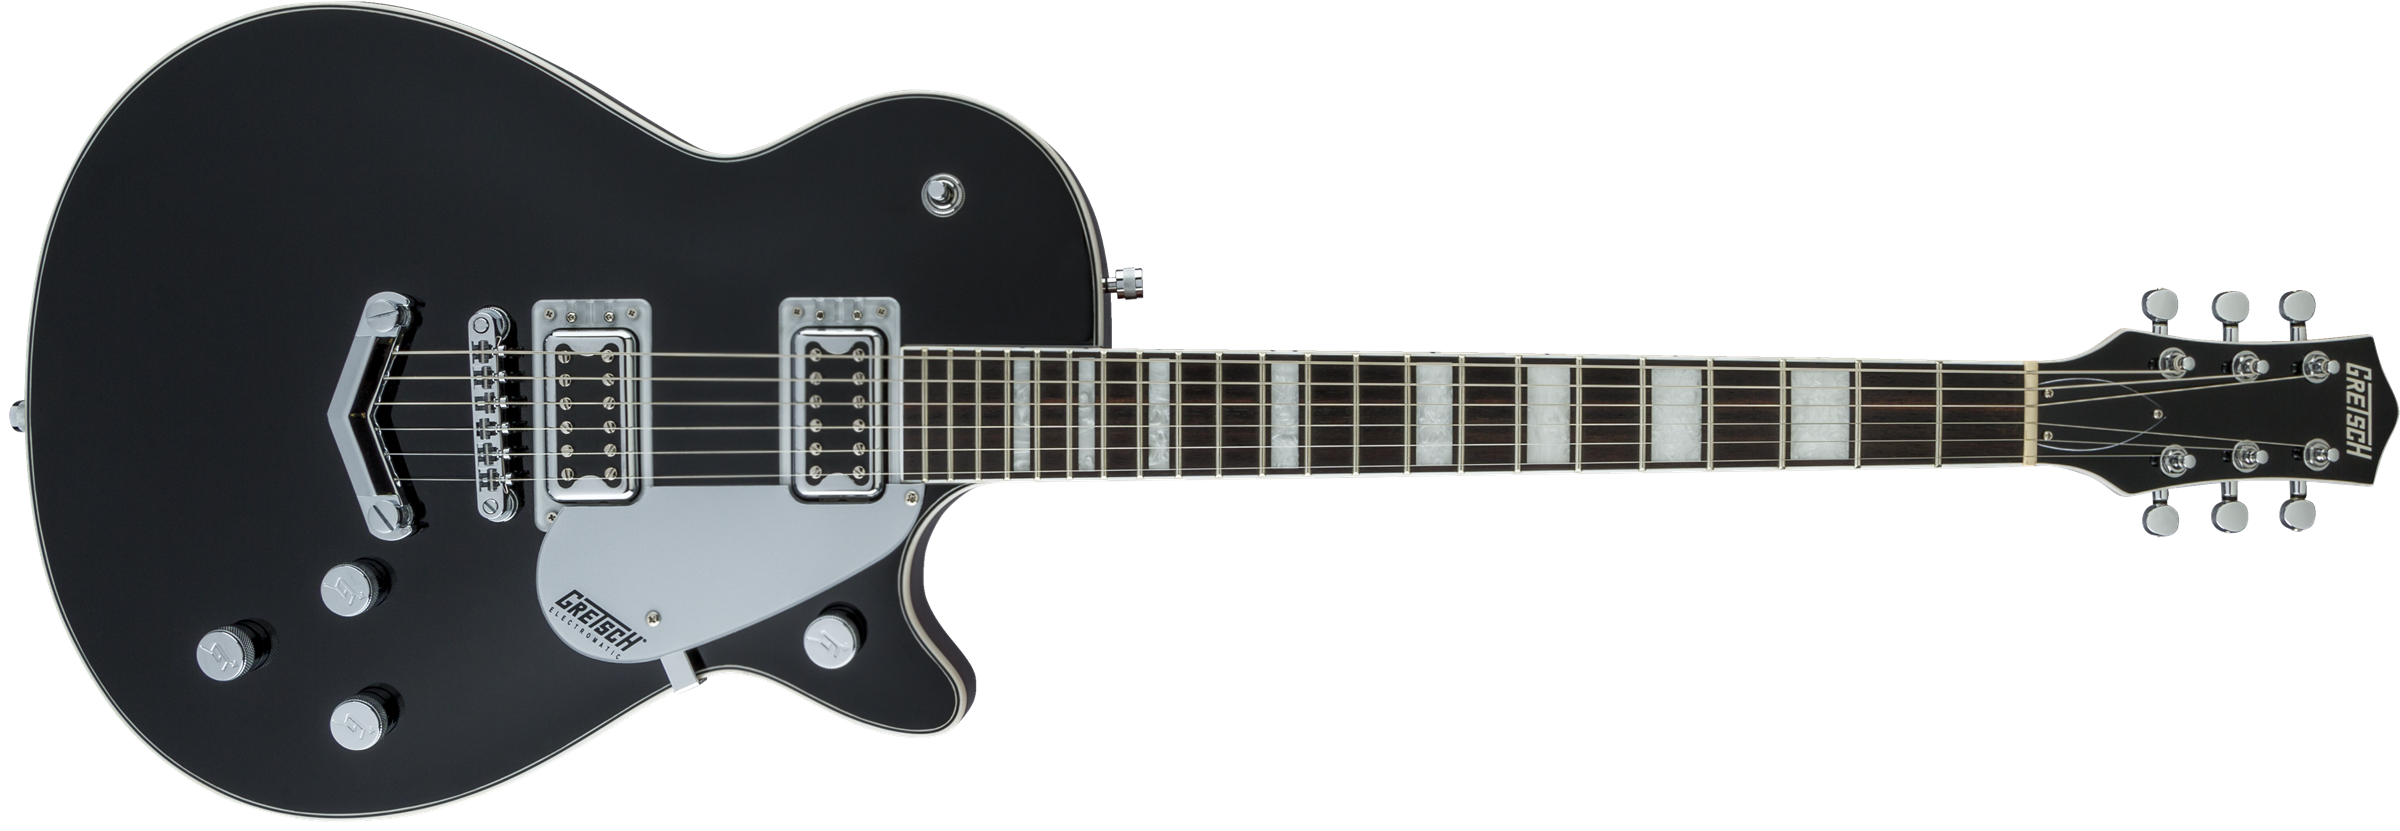 Gretsch G5220 Electromatic Jet BT Single-cut with V-Stoptail Blk